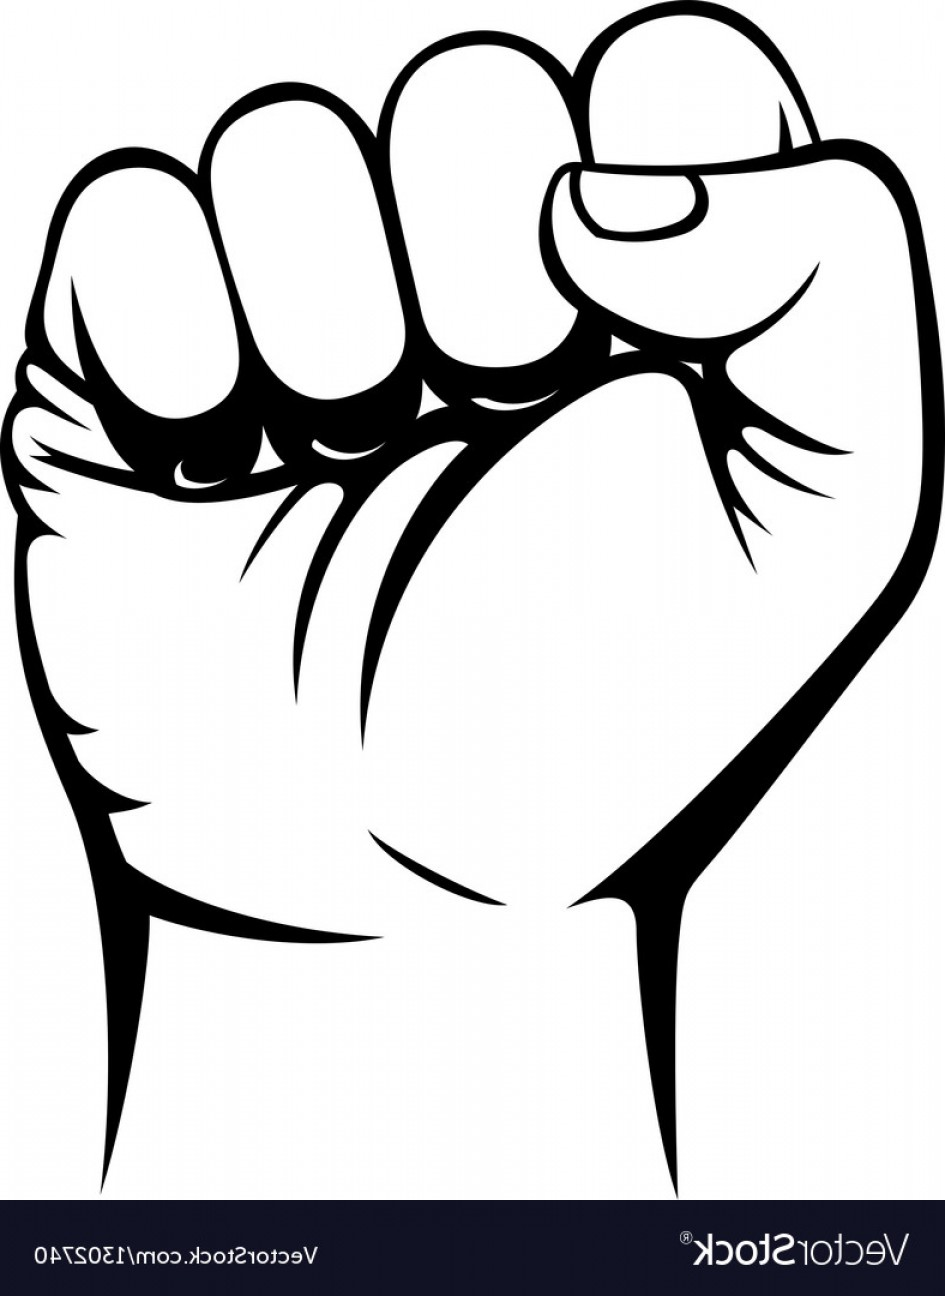 Hand Fist Vector: Male Clenched Fist Hand Vector